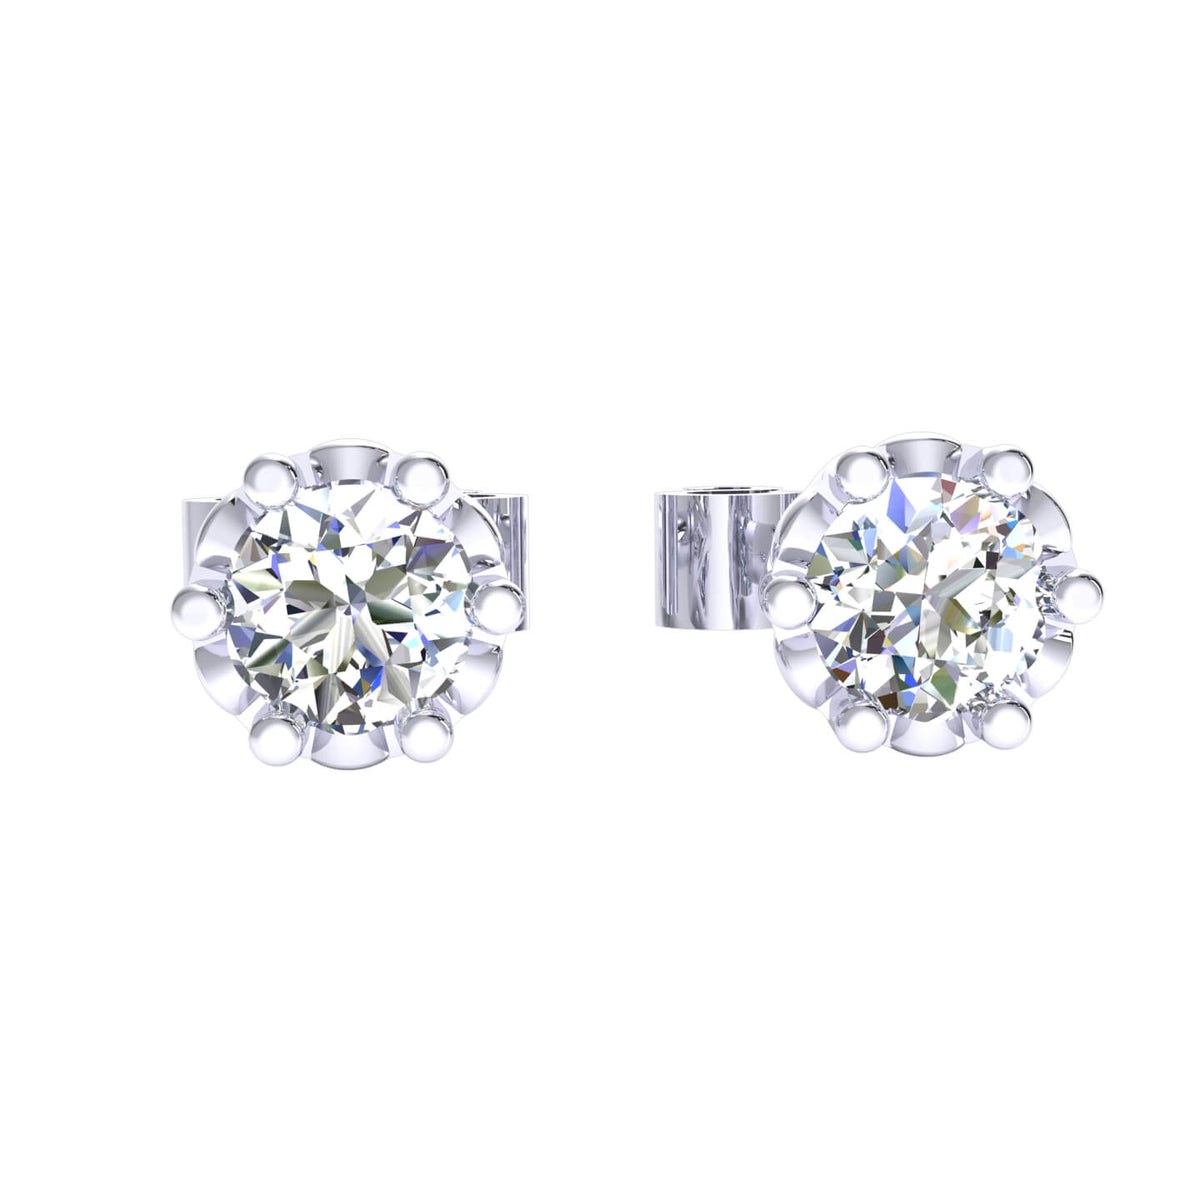 0.25 Ct Solitaire Classic Round GH I1-I2 Diamond Stud Earrings 925 Sterling Silver